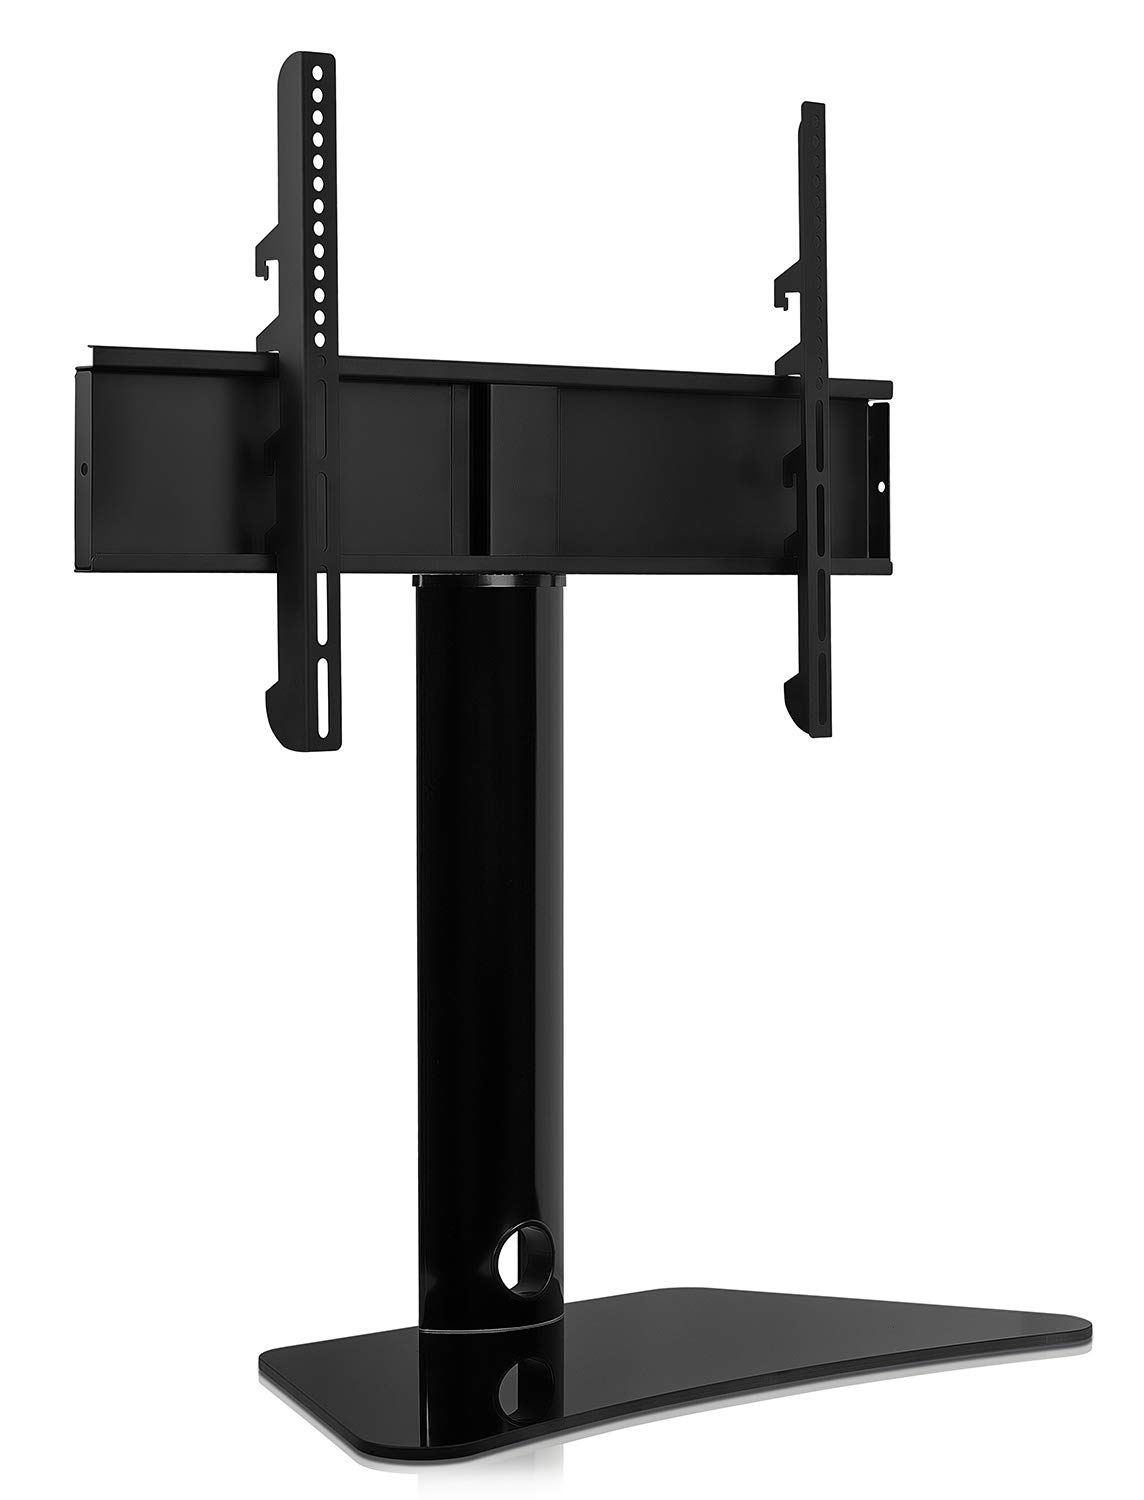 Mount-It Universal Swivel TV Stand, Swiveling Height Adjustable Television Tabletop Base Fits 32 to 65 LED LCD Flatscreens MI-844